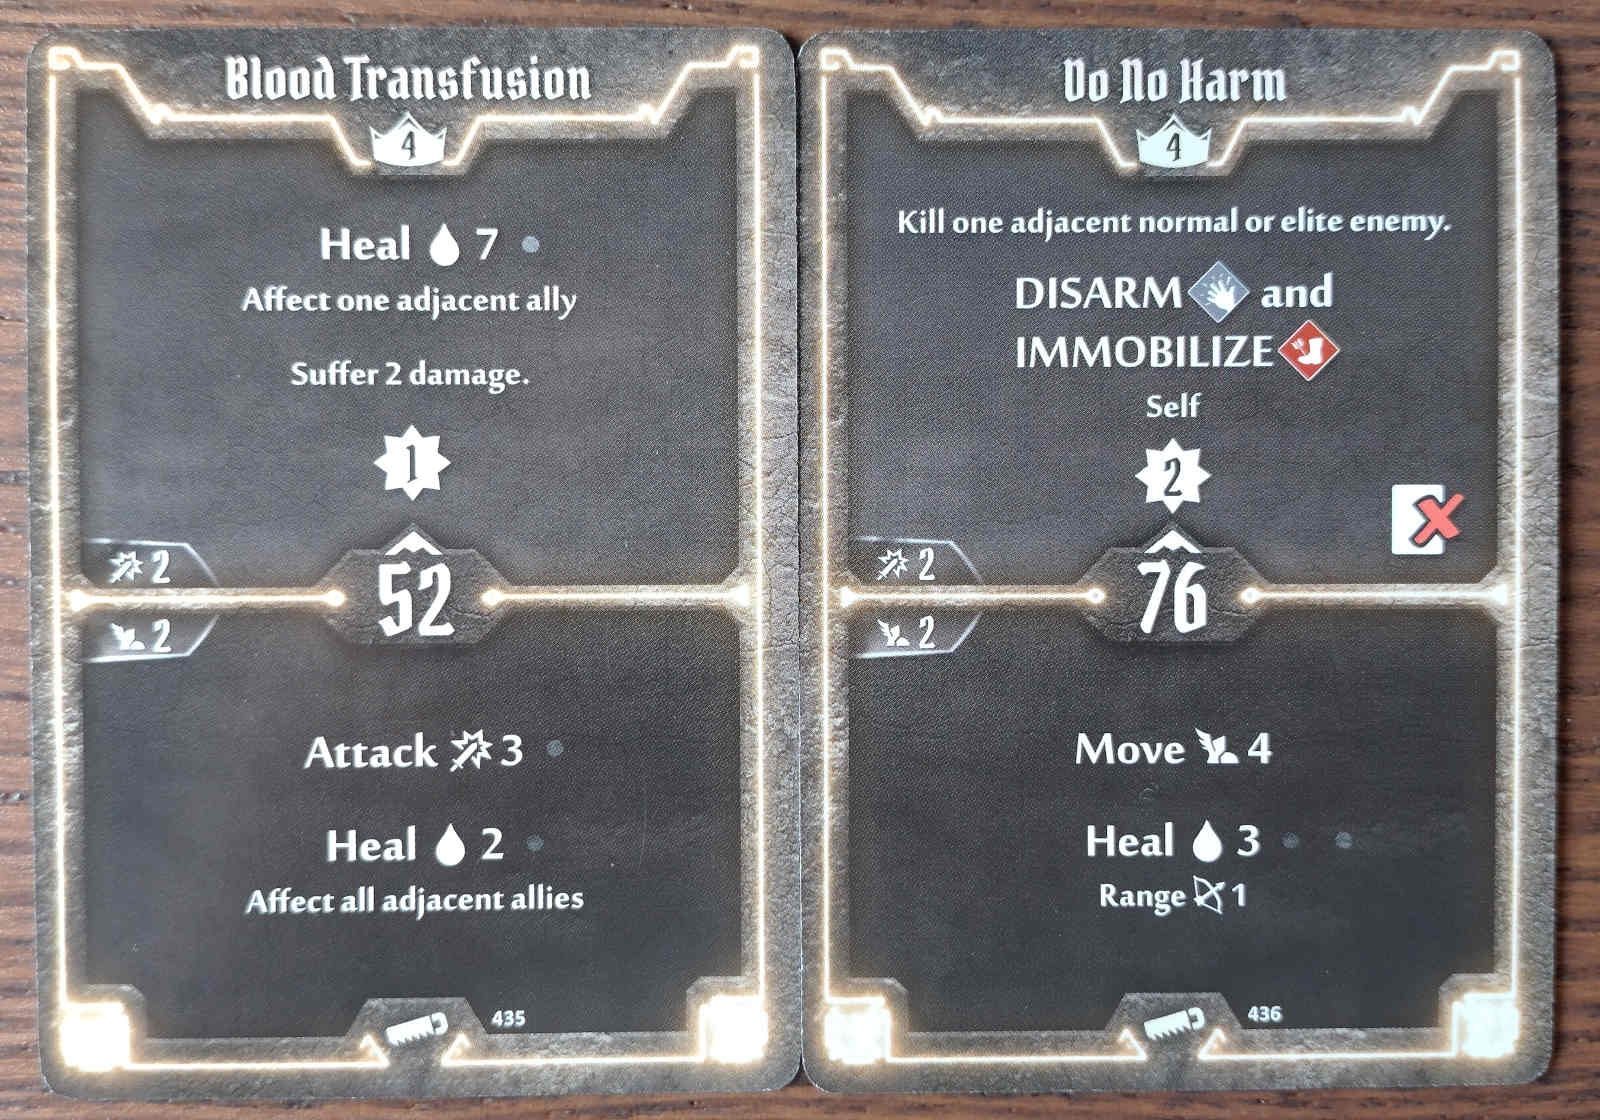 Level 4 Sawbones cards - Blood Transfusion and Do No Harm